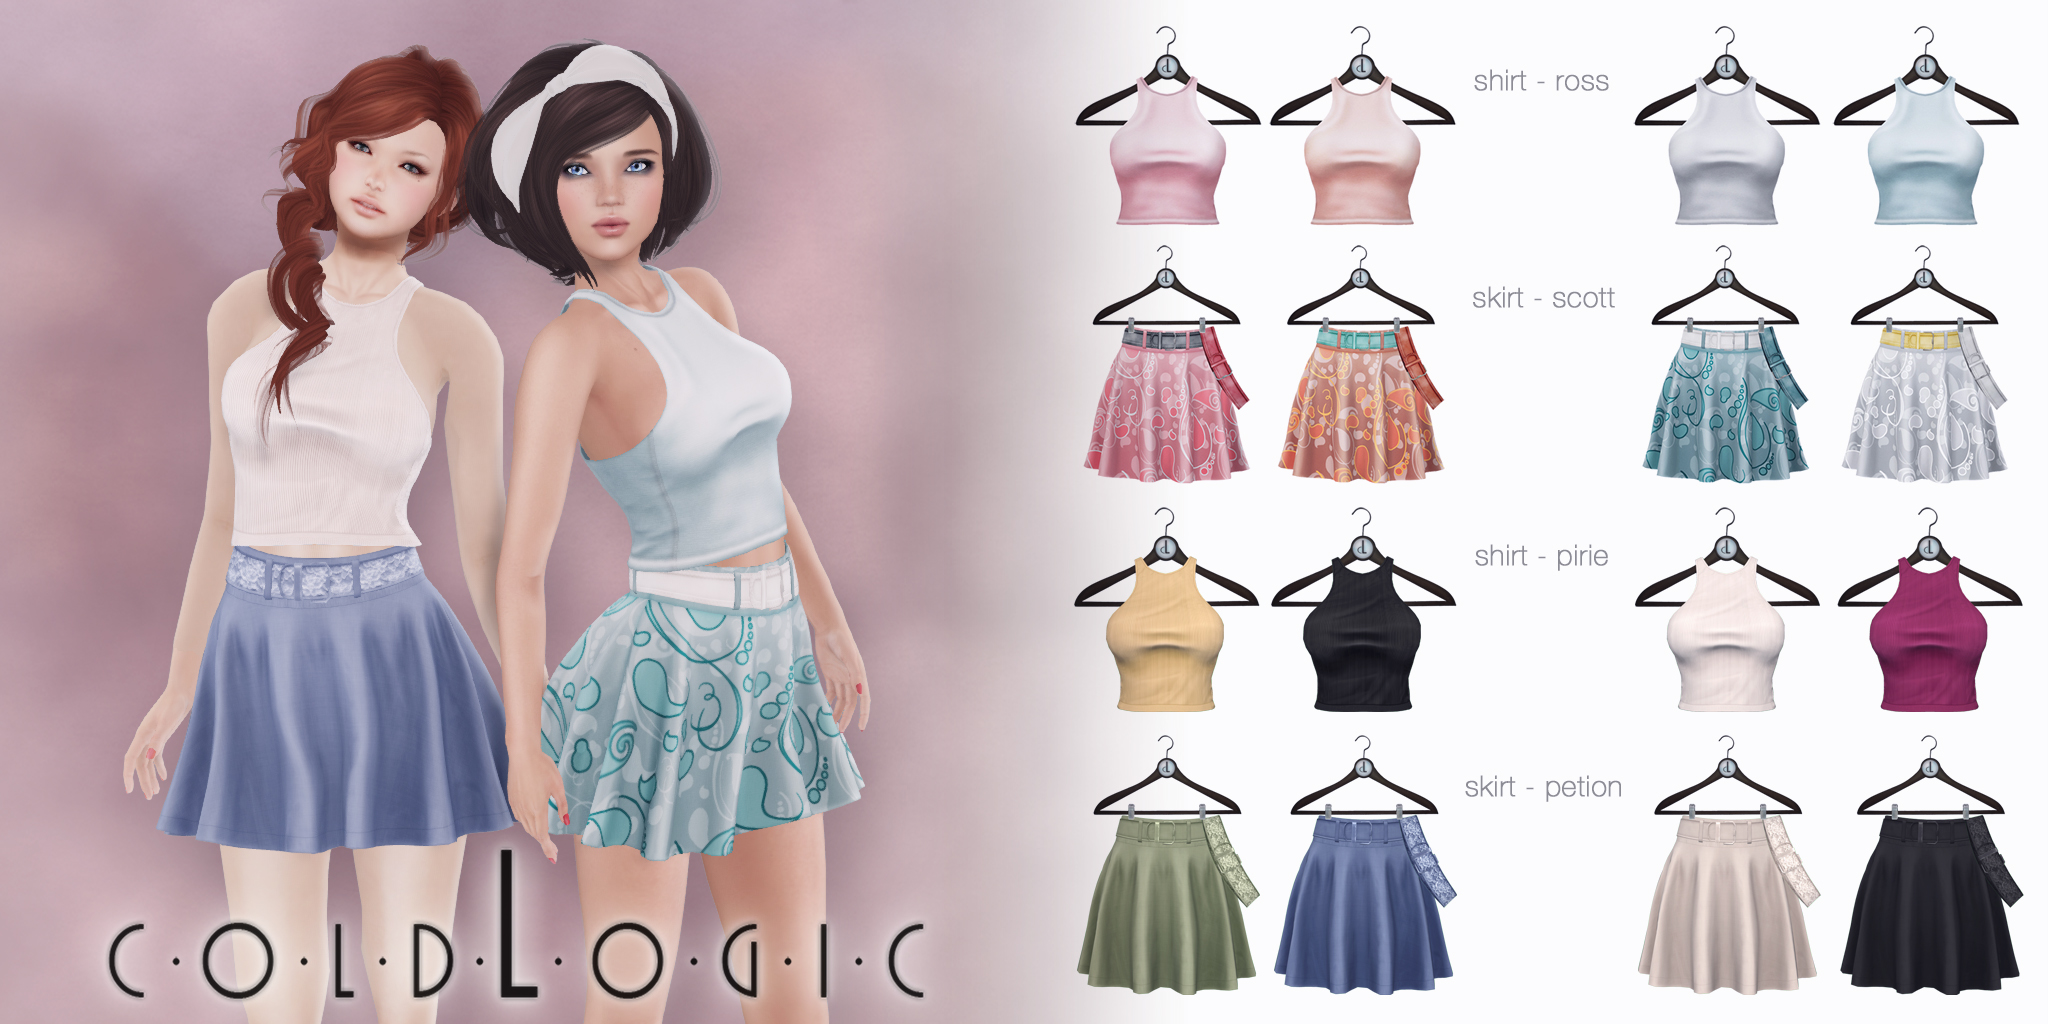 coldLogic - skirts & racerback tanks